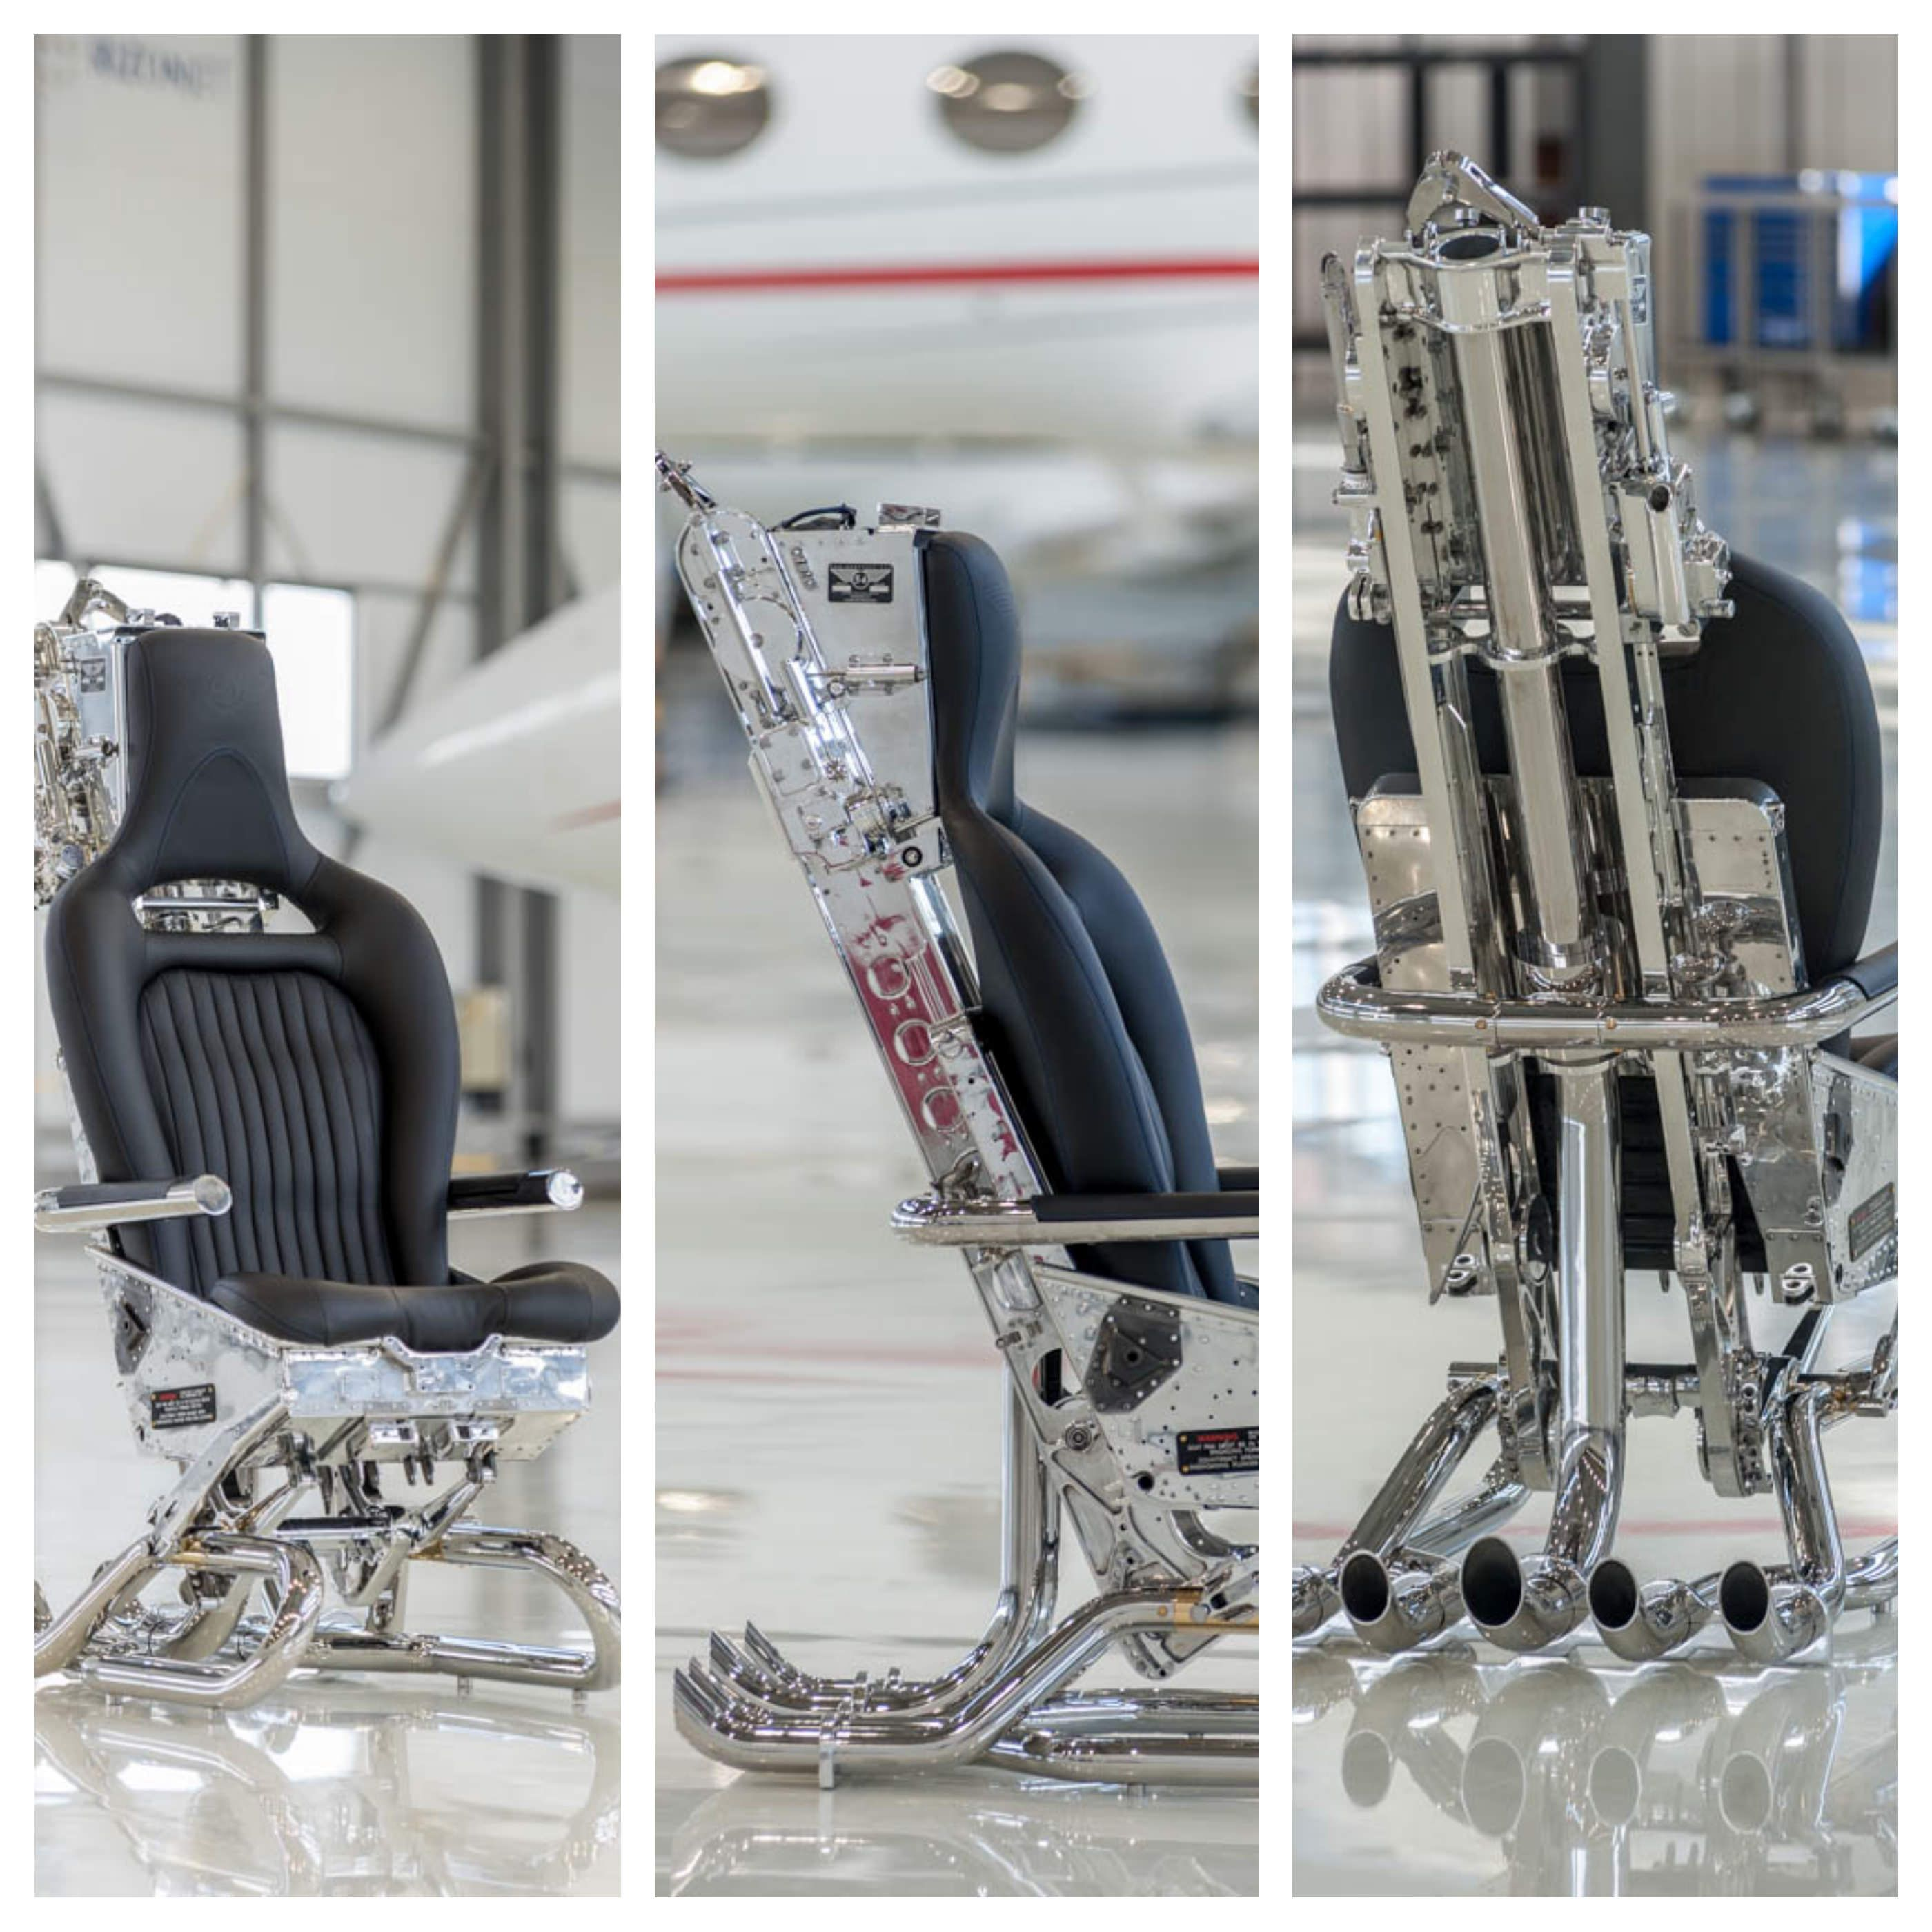 Ejection Seat by Hangar 54